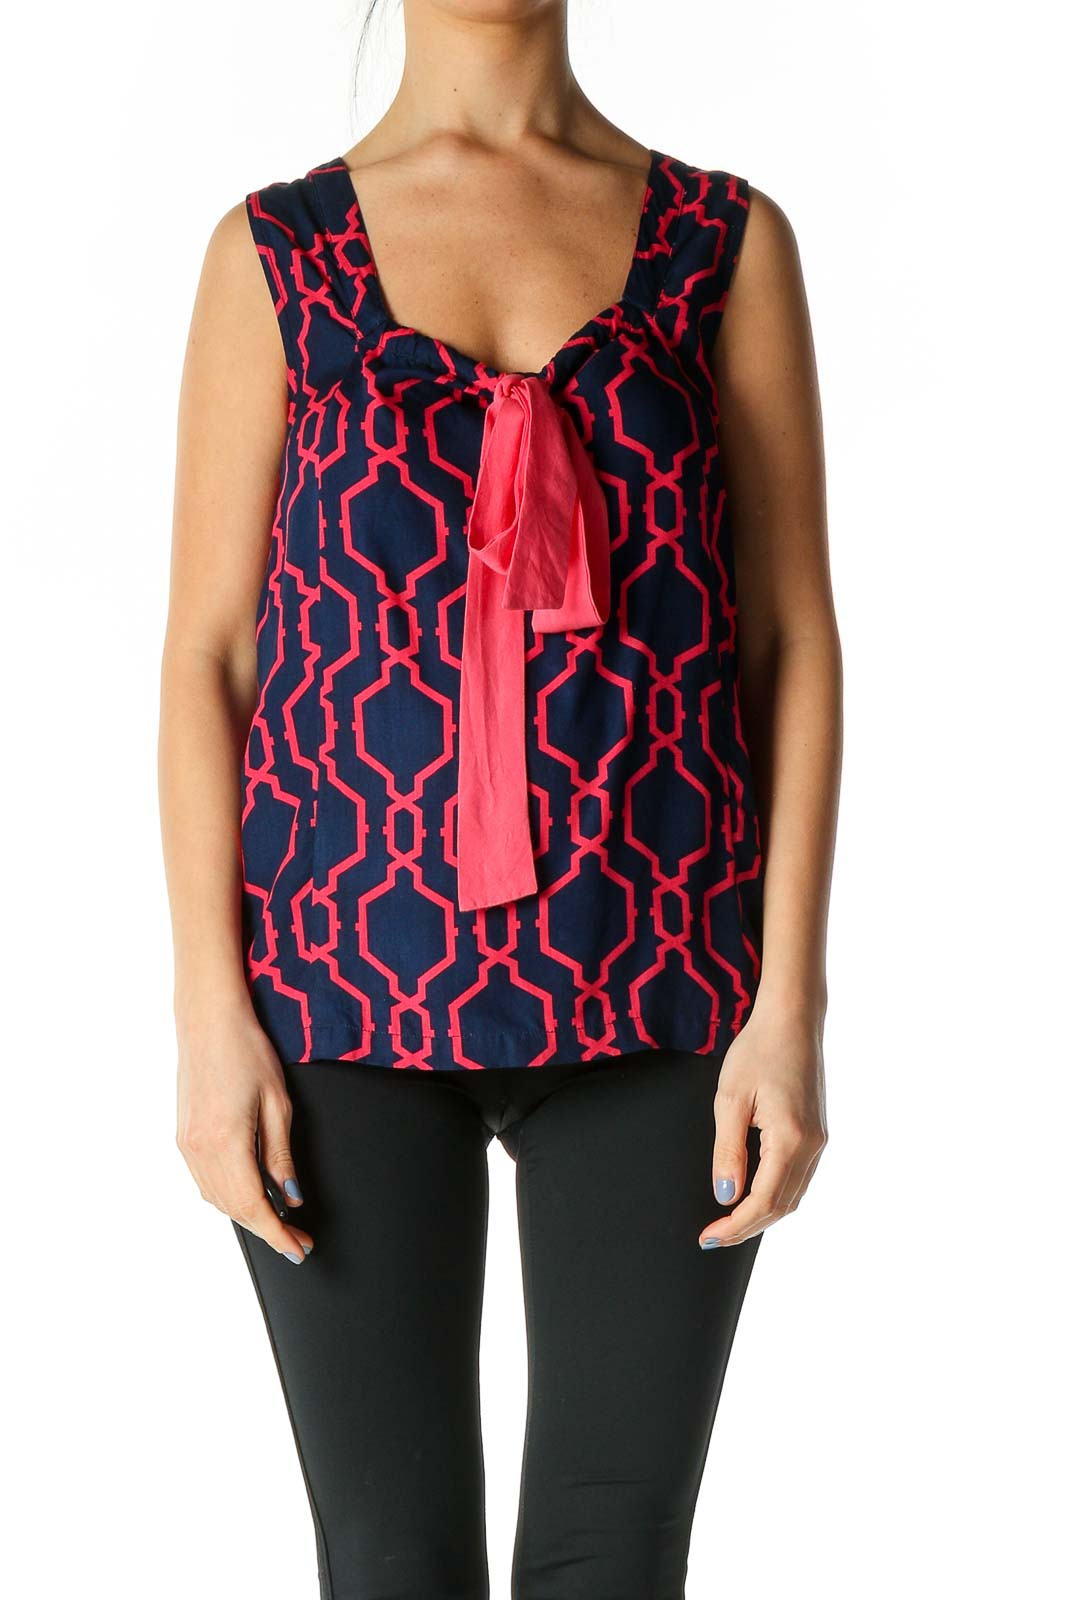 Pink Geometric Print Casual Tank Top Front